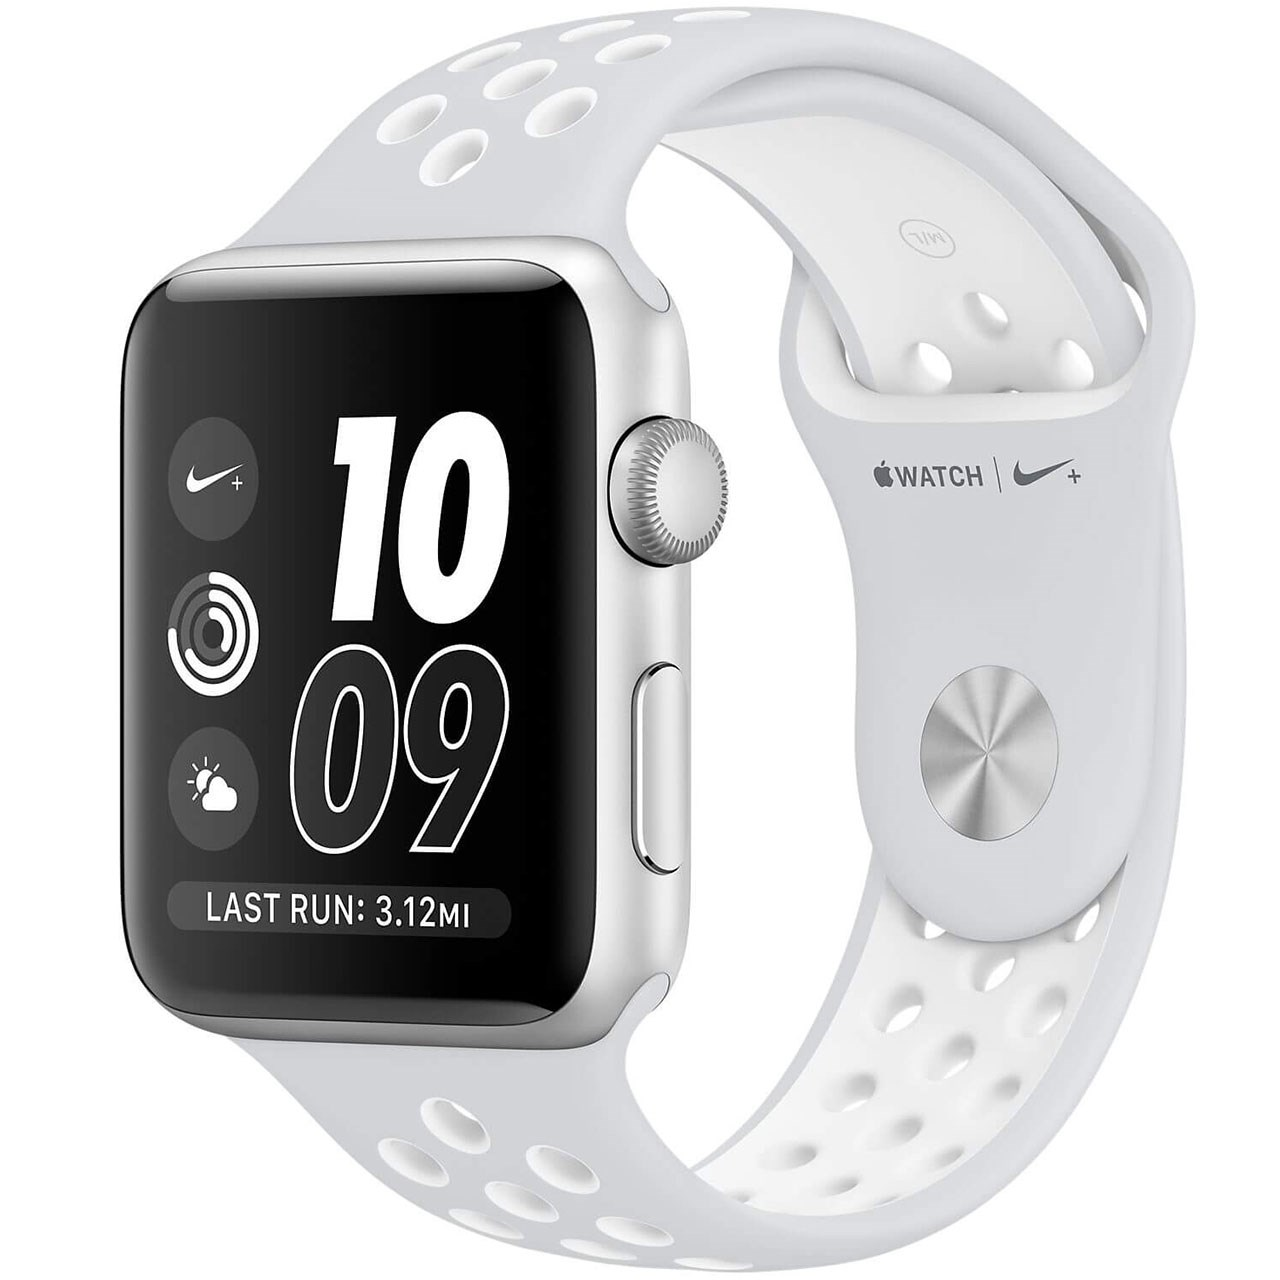 ساعت هوشمند اپل واچ سری 2 مدل Nike Plus 38mm Silver Aluminum Case with Pure Platinum/White Nike Sport Band